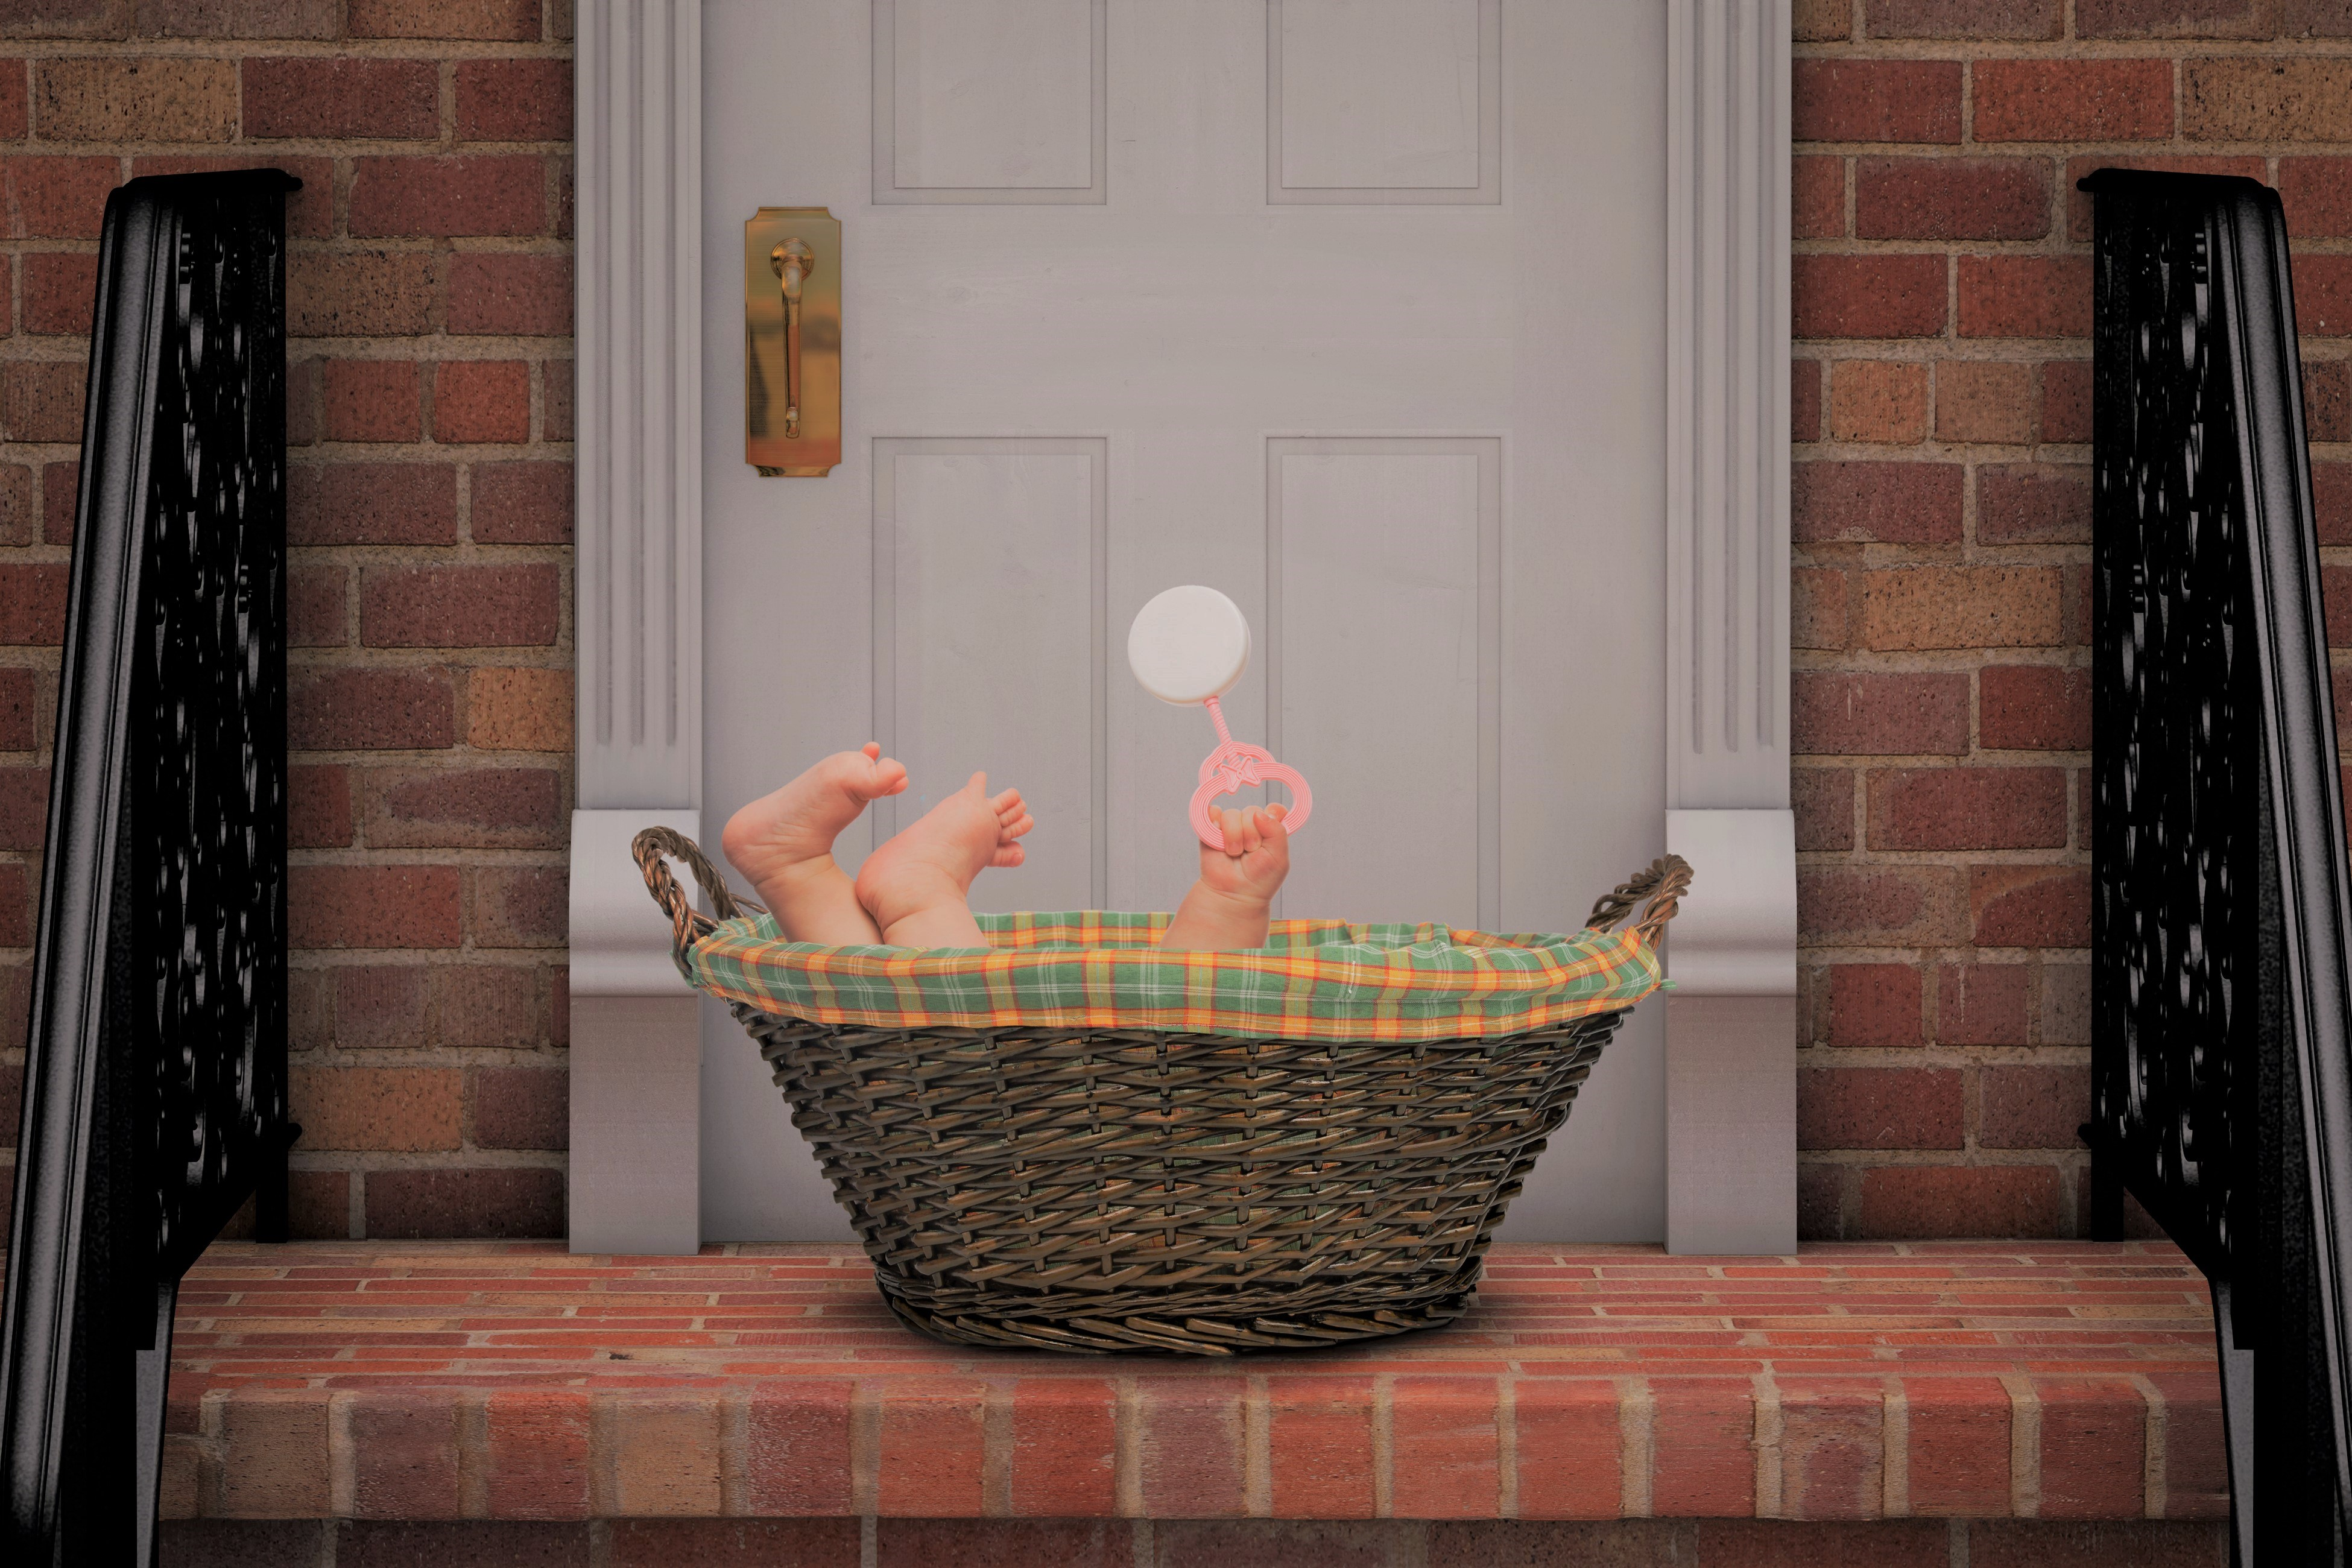 Baby Holding Pink Rattle In Basket on Doorstep